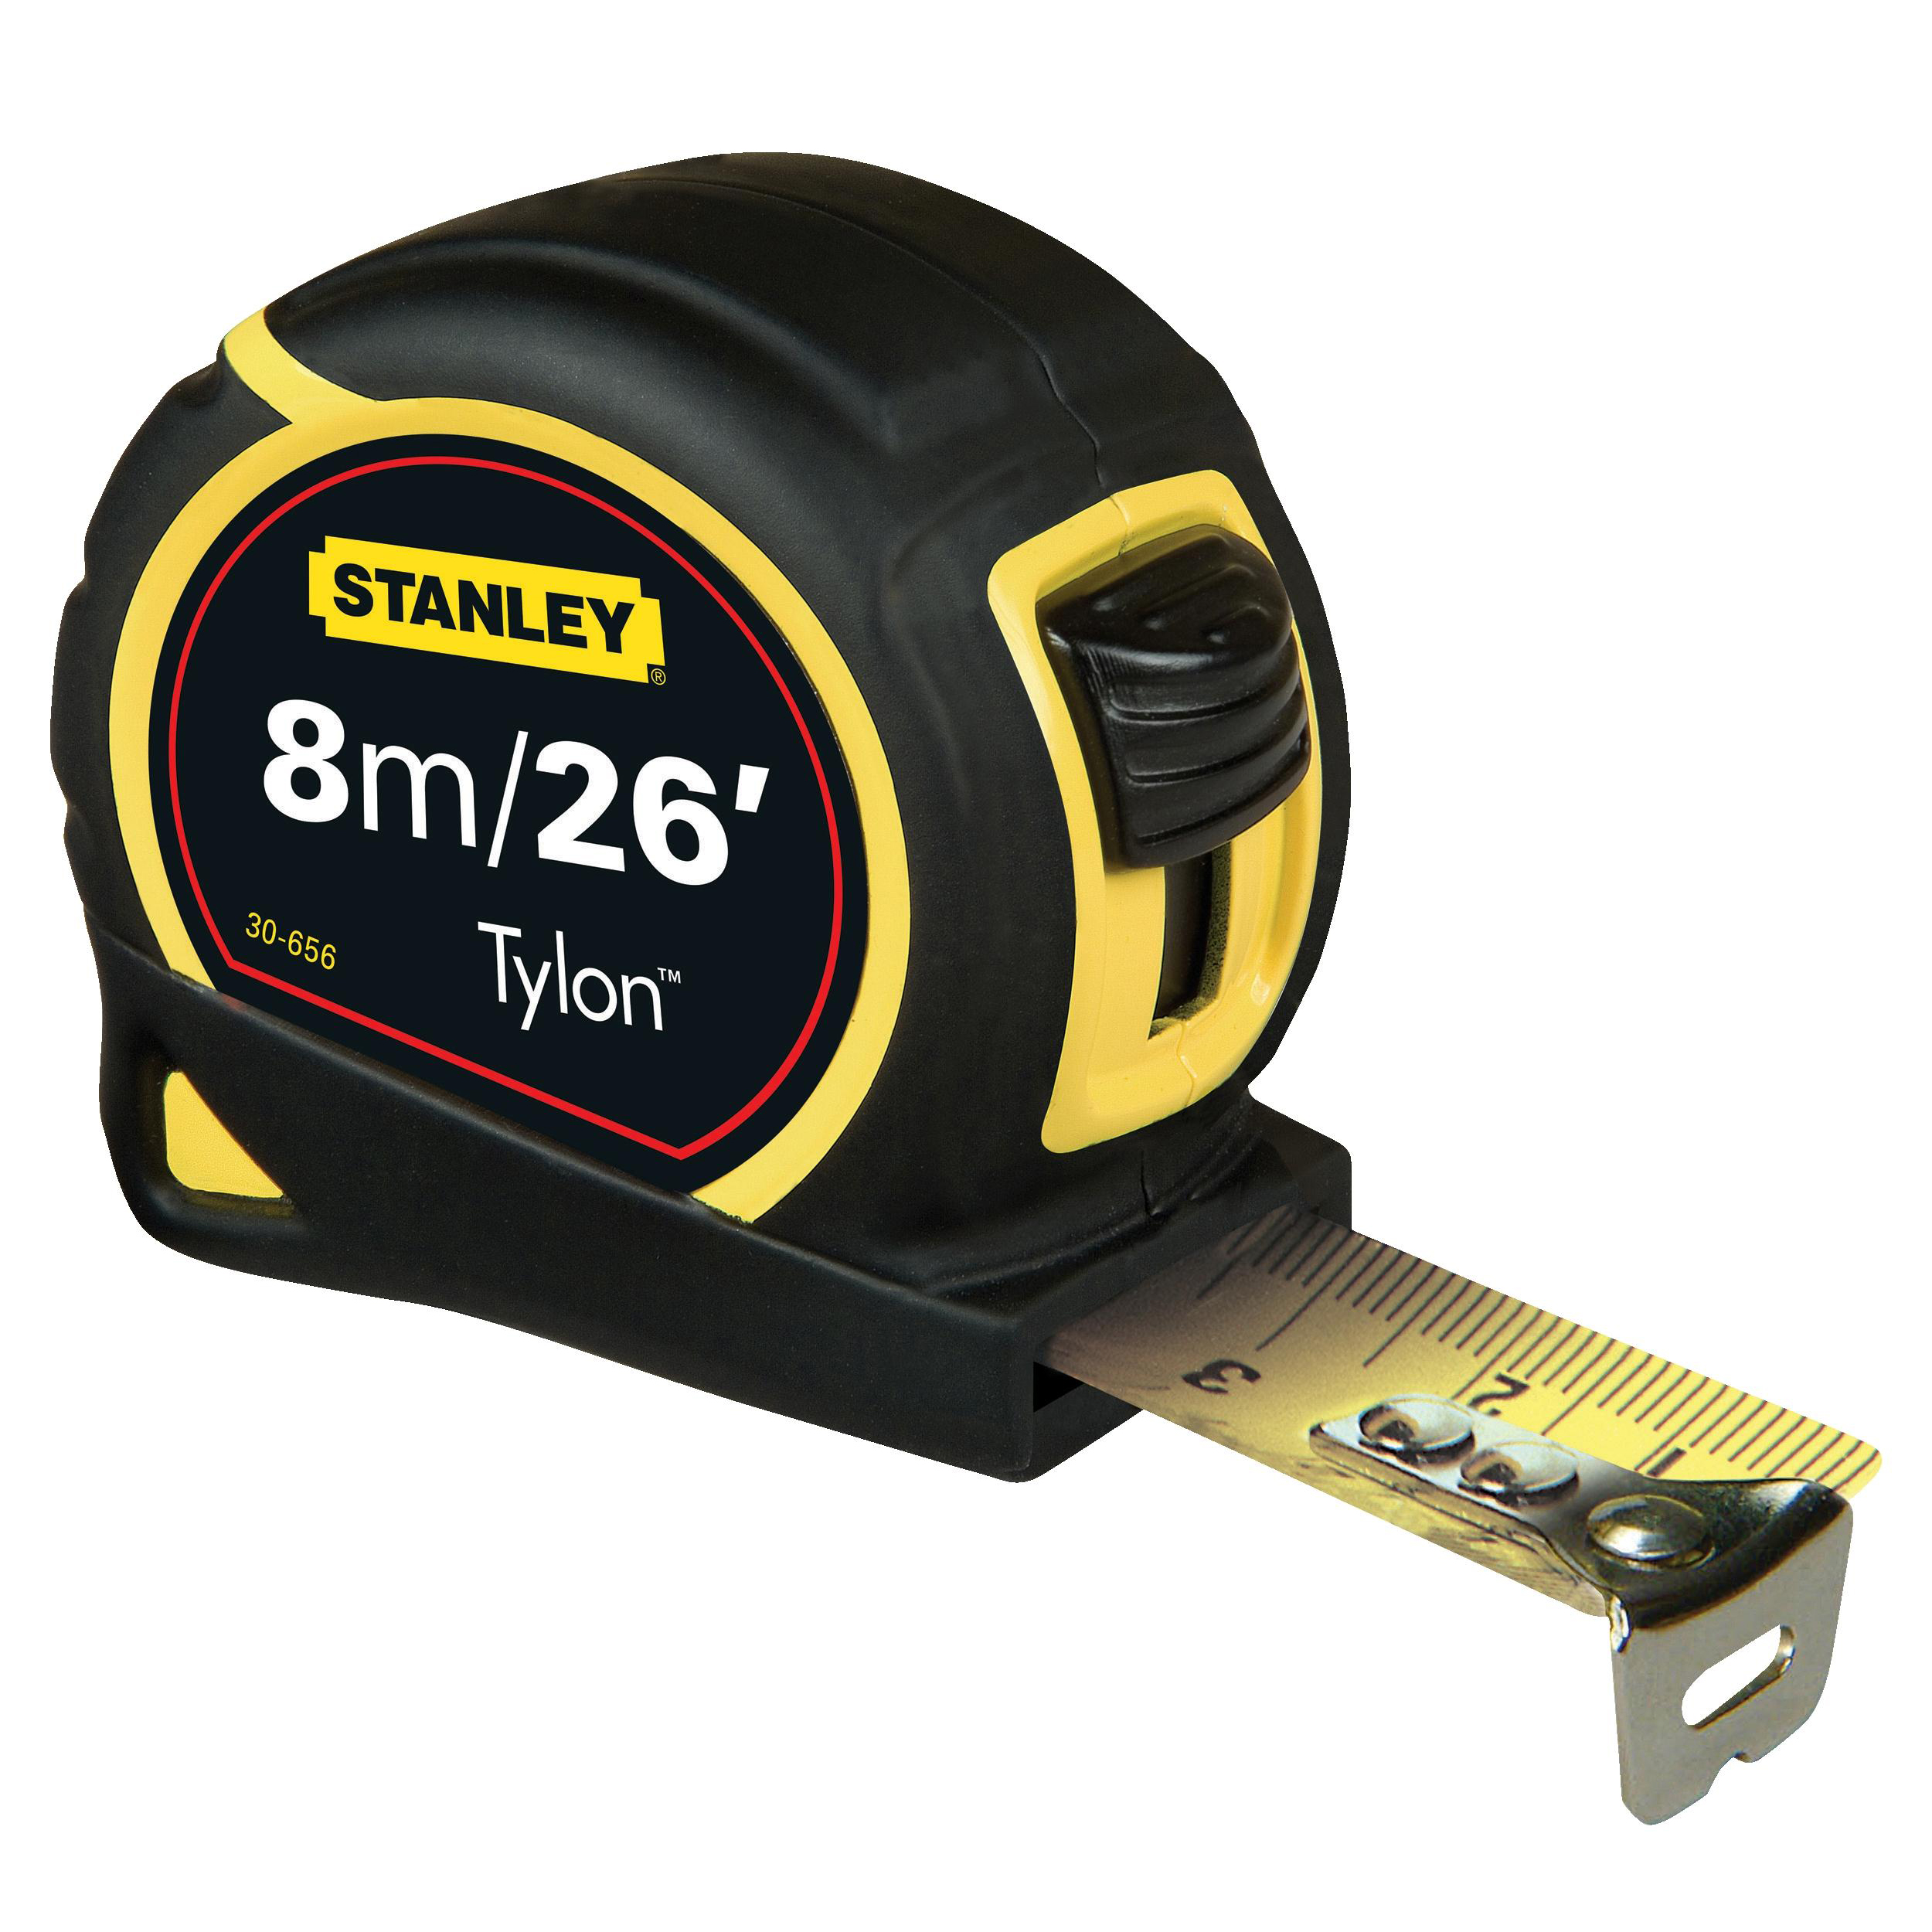 Tape measures Stanley Tape Measure Pocket 8m/26 Feet Tylon Ref 0-30-656